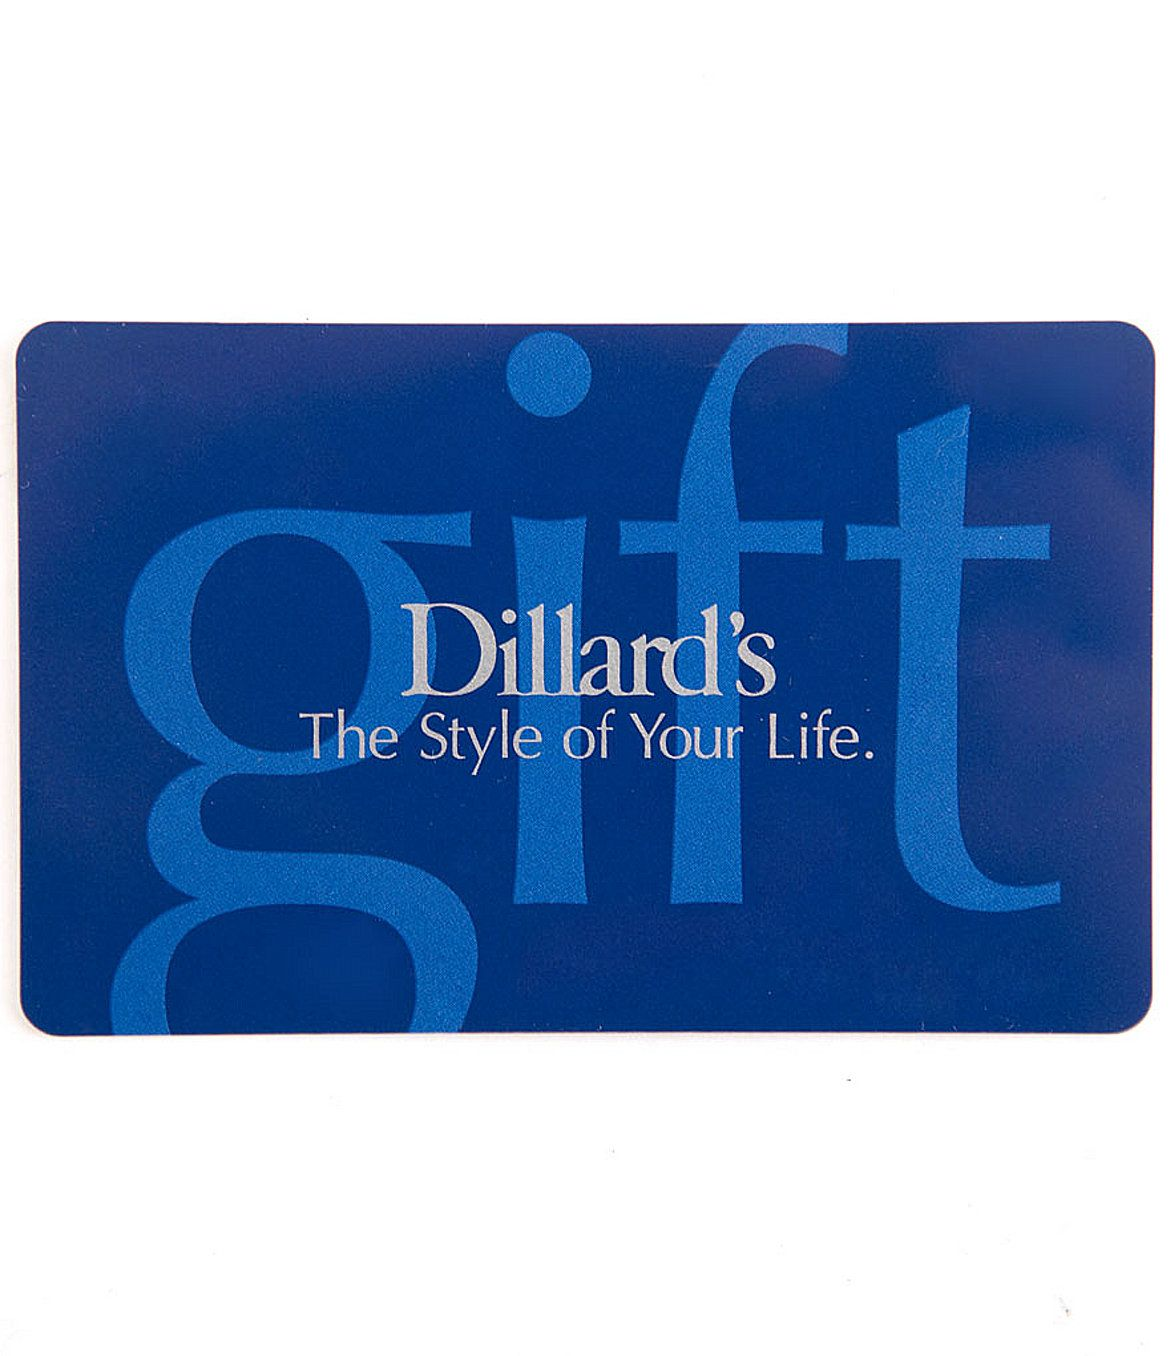 Dillards Wedding Gifts: The Style Of Your Life Everyday Gift Card In 2019